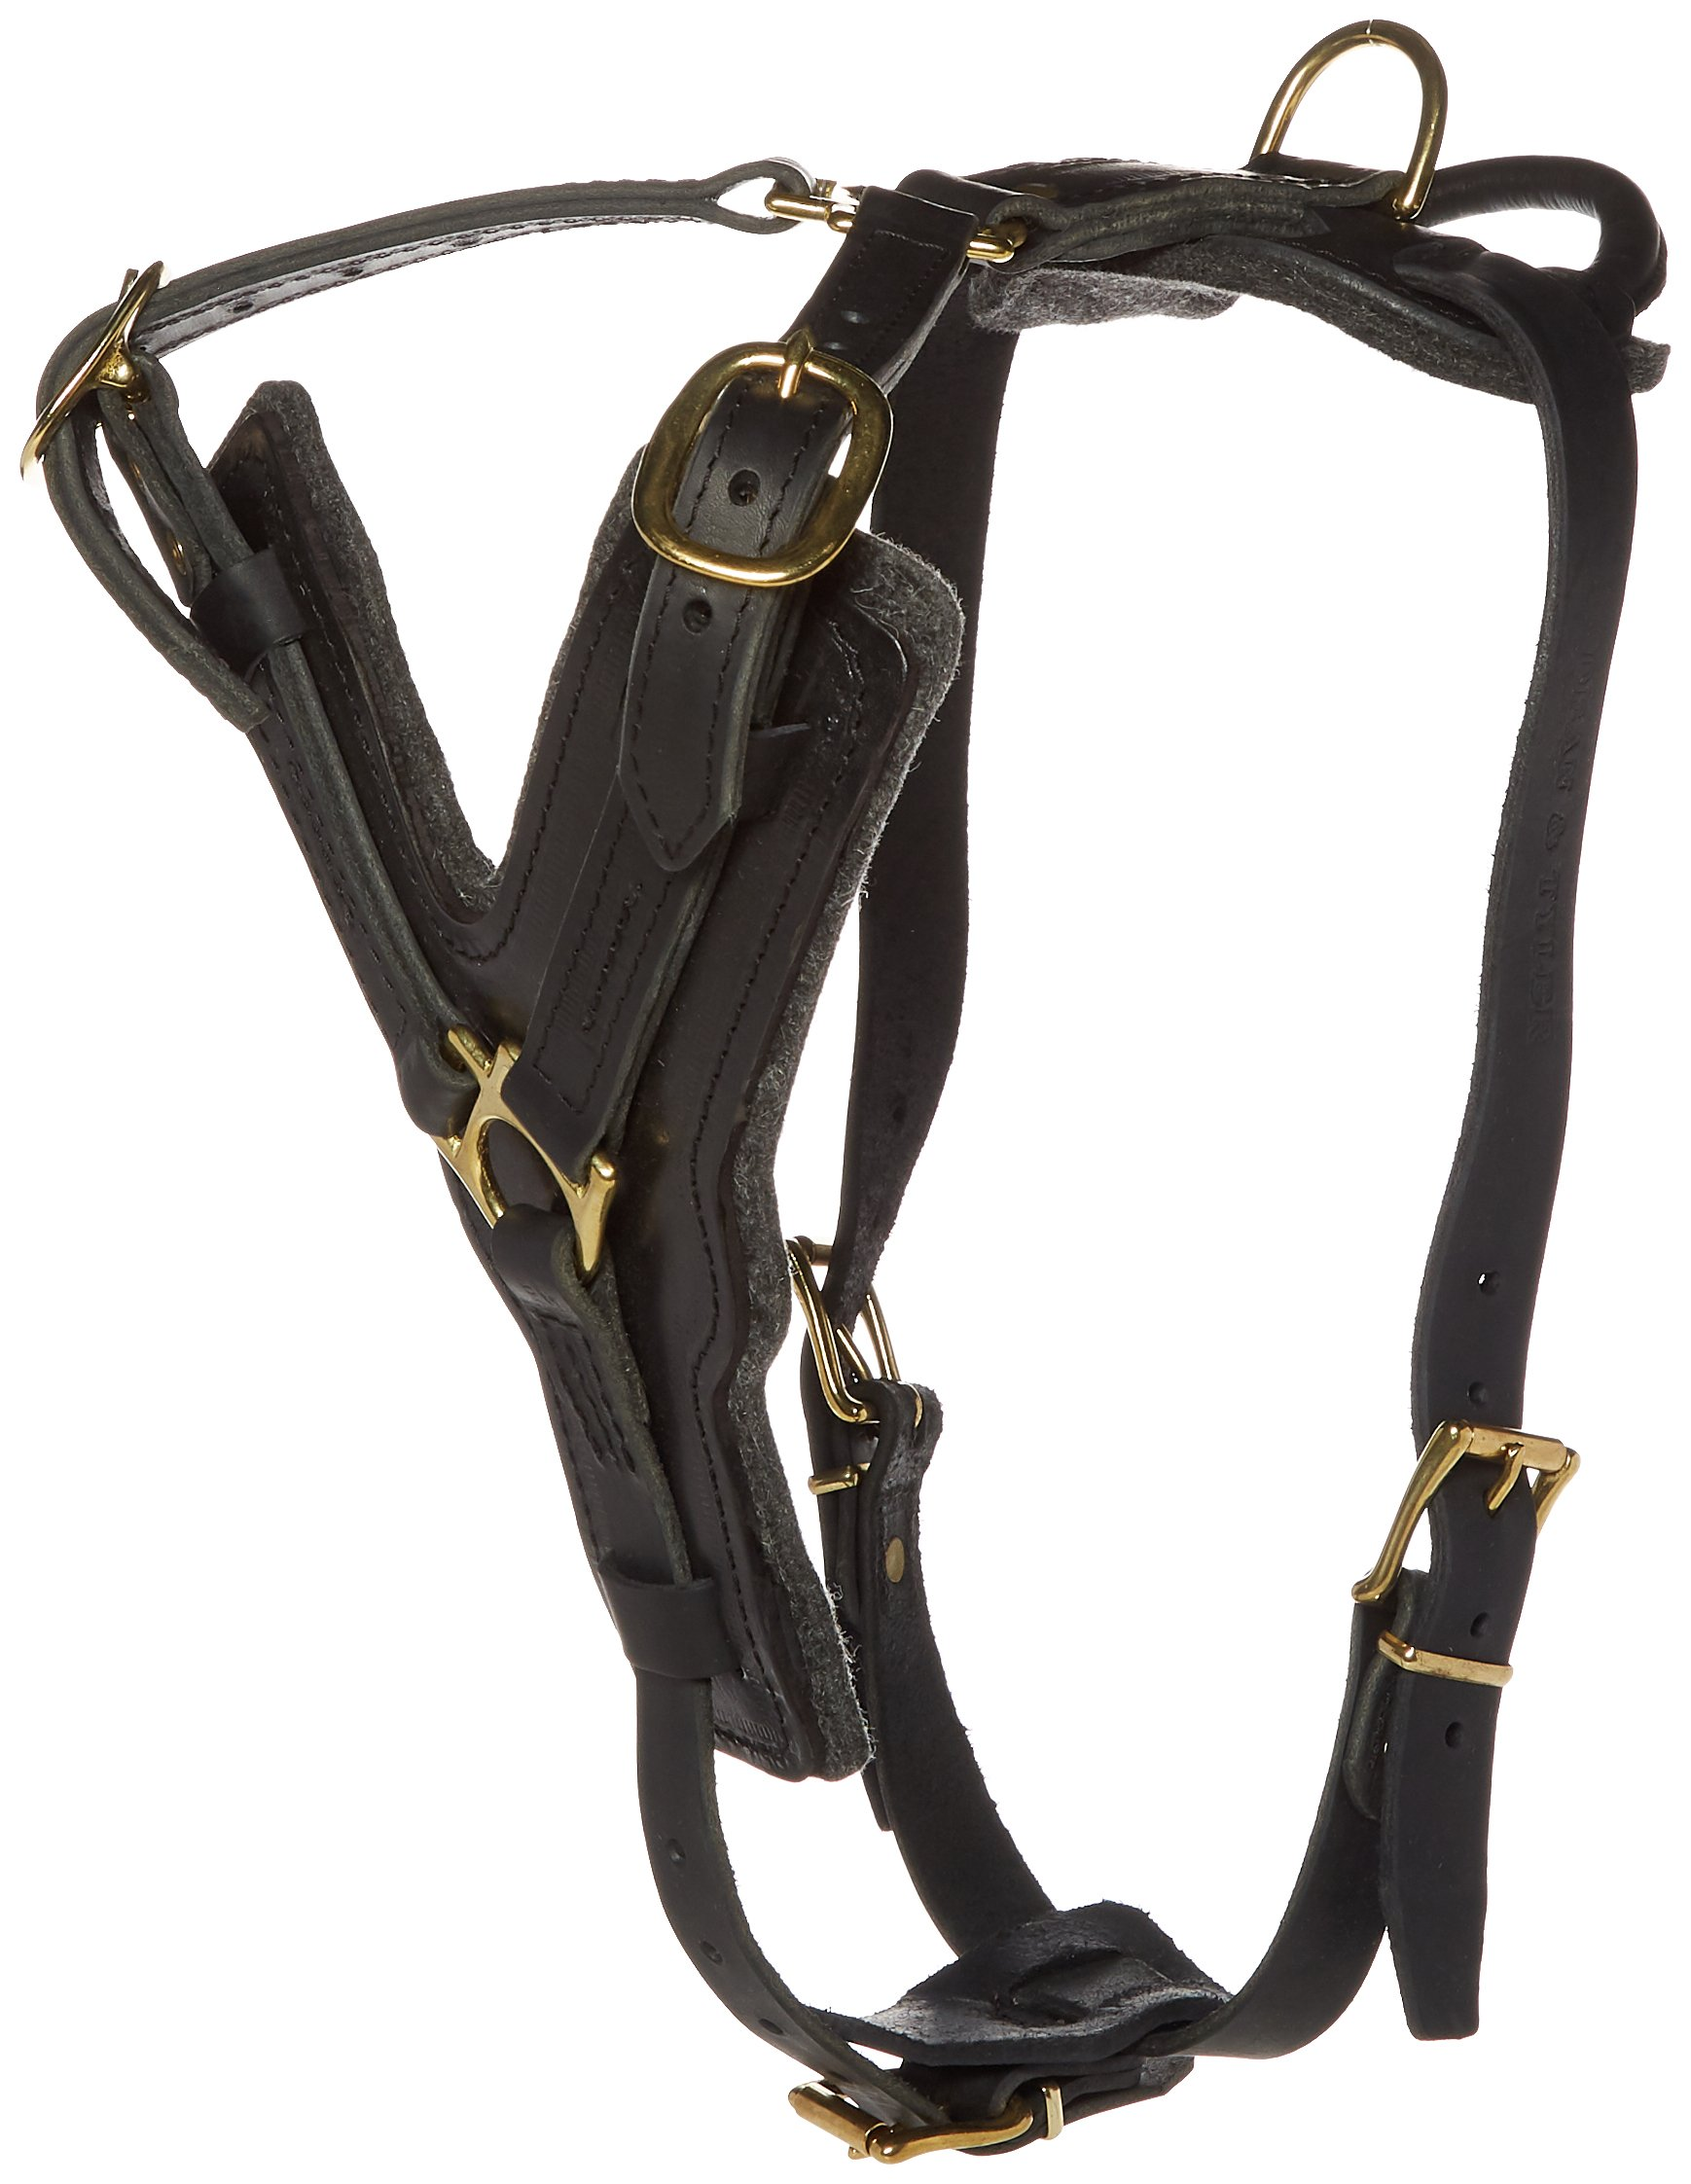 Dean and Tyler The Victory with Handle Leather Dog Harness, Black, Large - Fits Girth Size: 31-Inch to 41-Inch